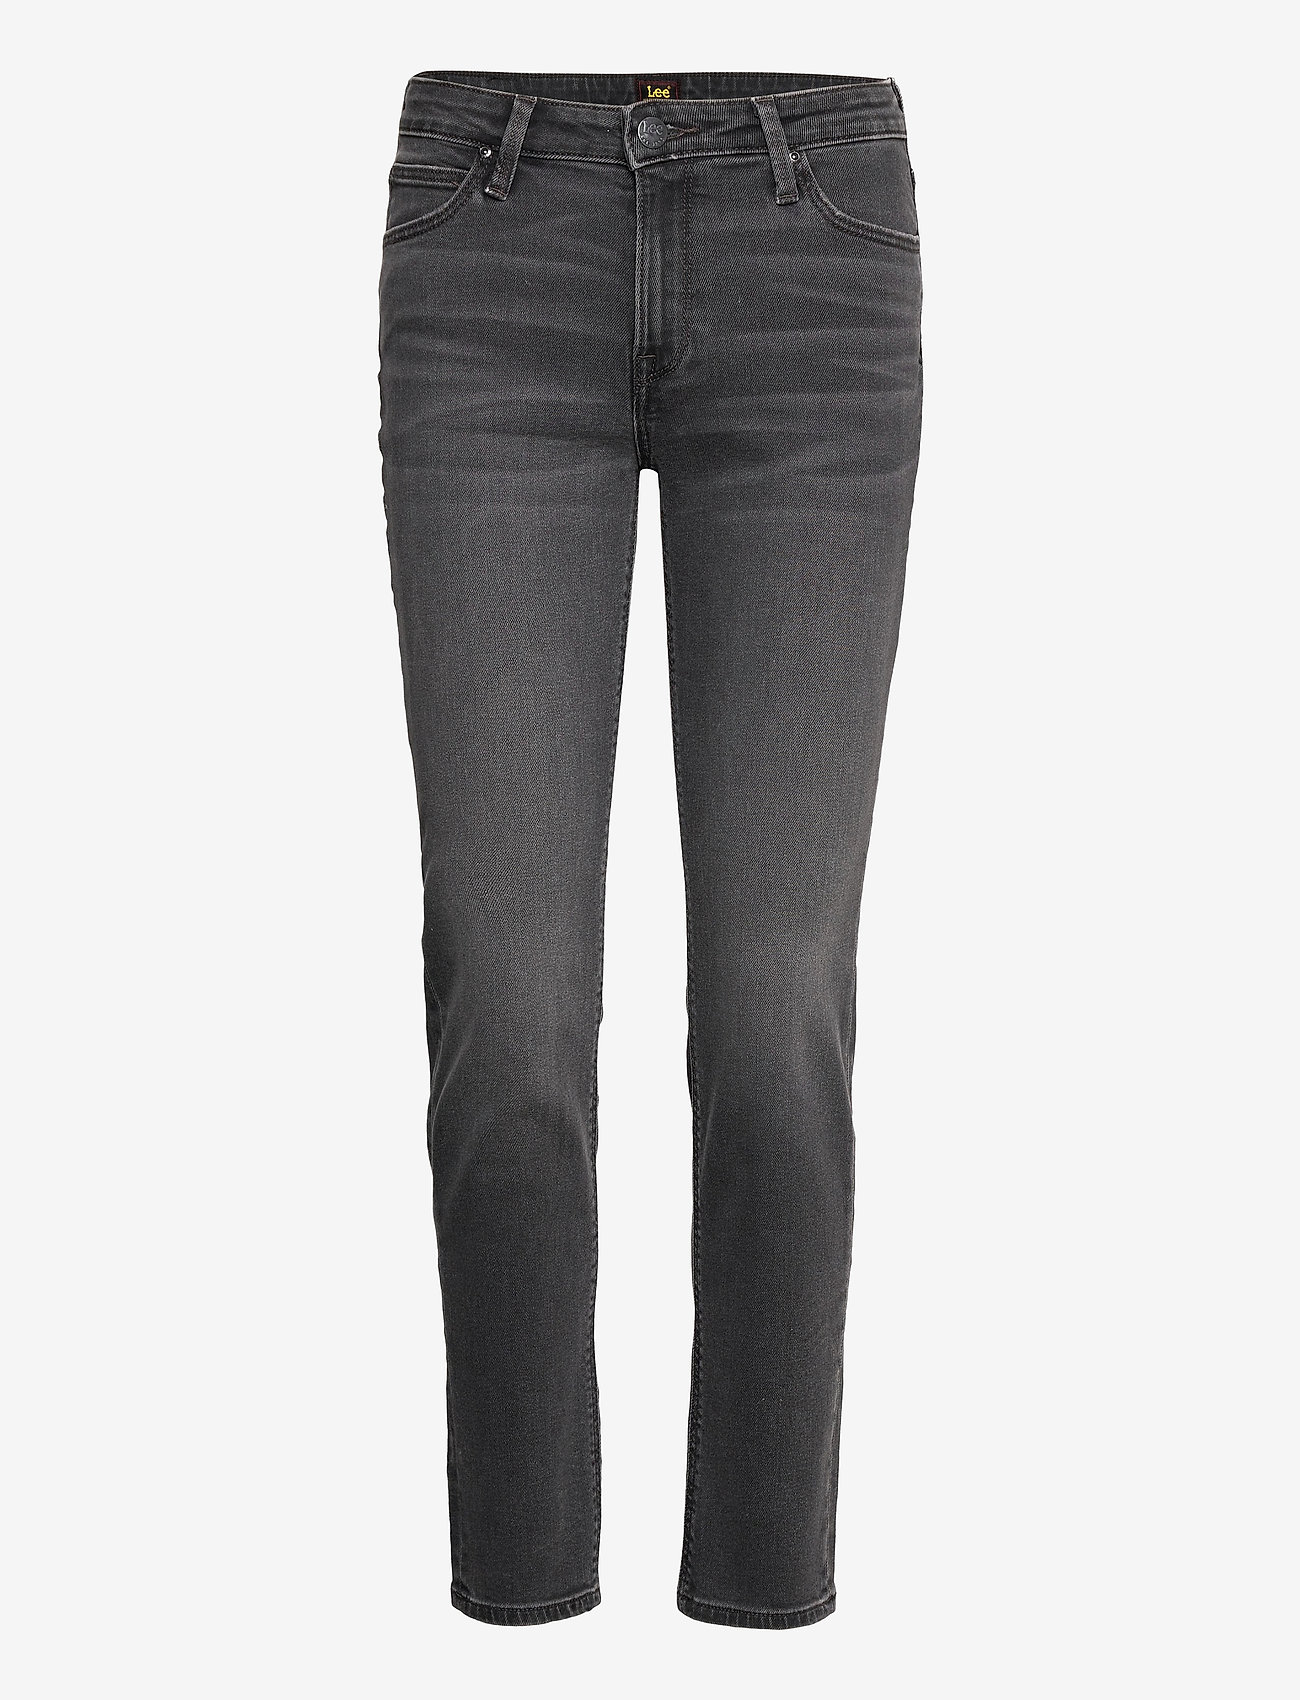 Lee Jeans - ELLY - slim jeans - black flow - 0